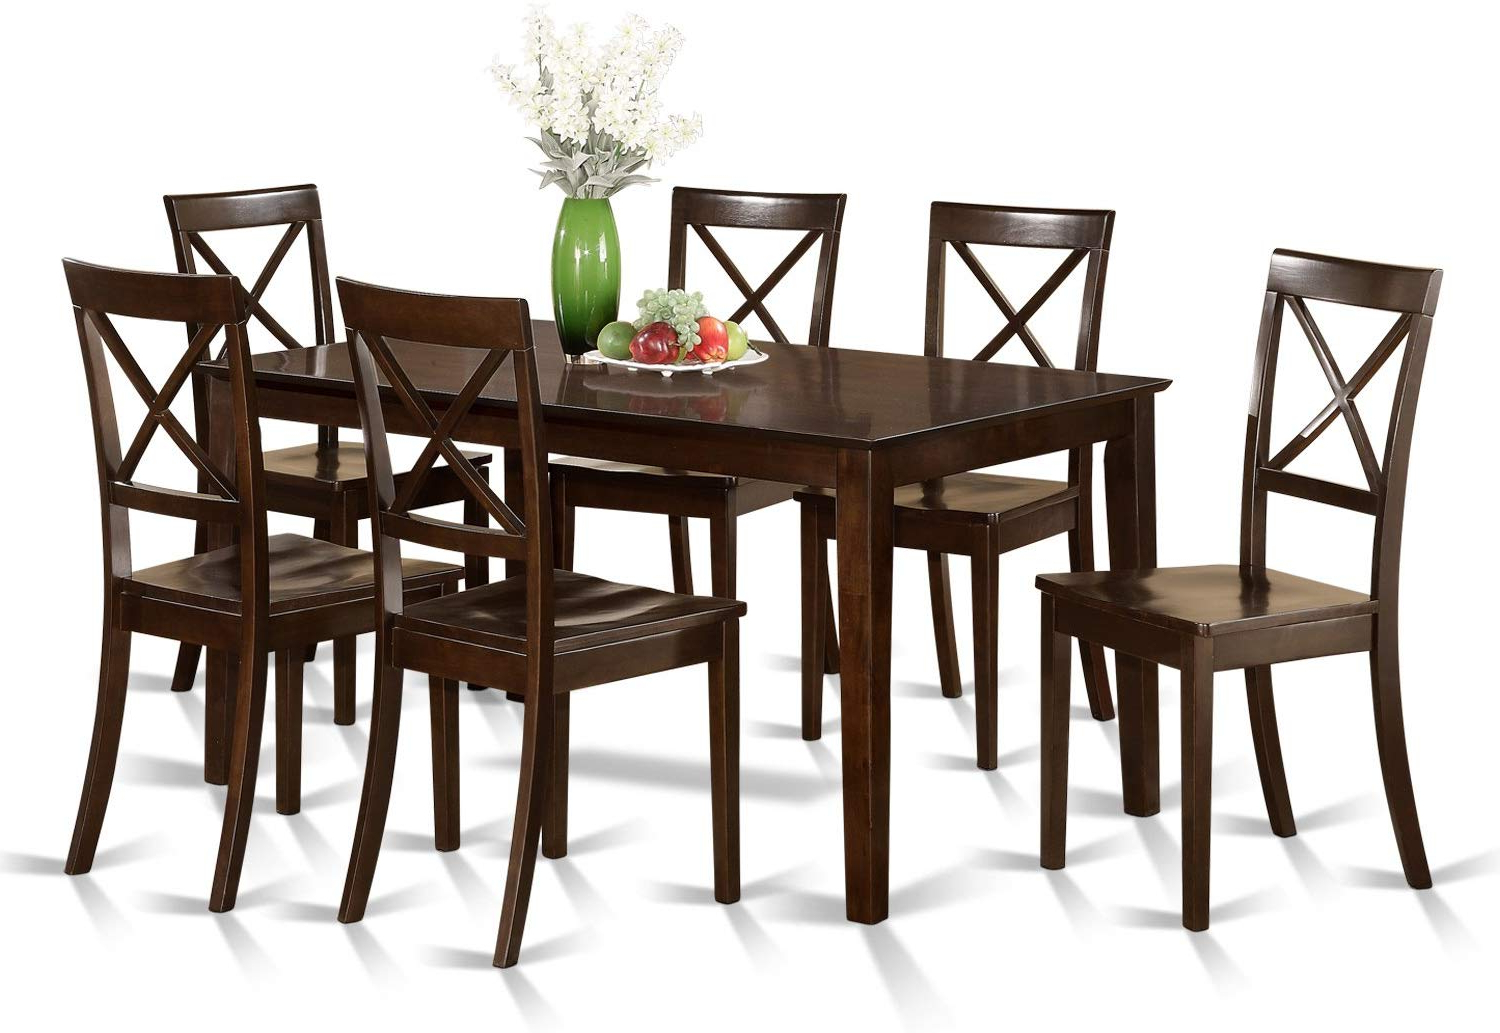 Cab7S Cap W 7 Pc Formal Dining Room Set – Table And 6 Formal Dining Chairs Regarding Most Recent Cappuccino Finish Wood Classic Casual Dining Tables (View 10 of 25)